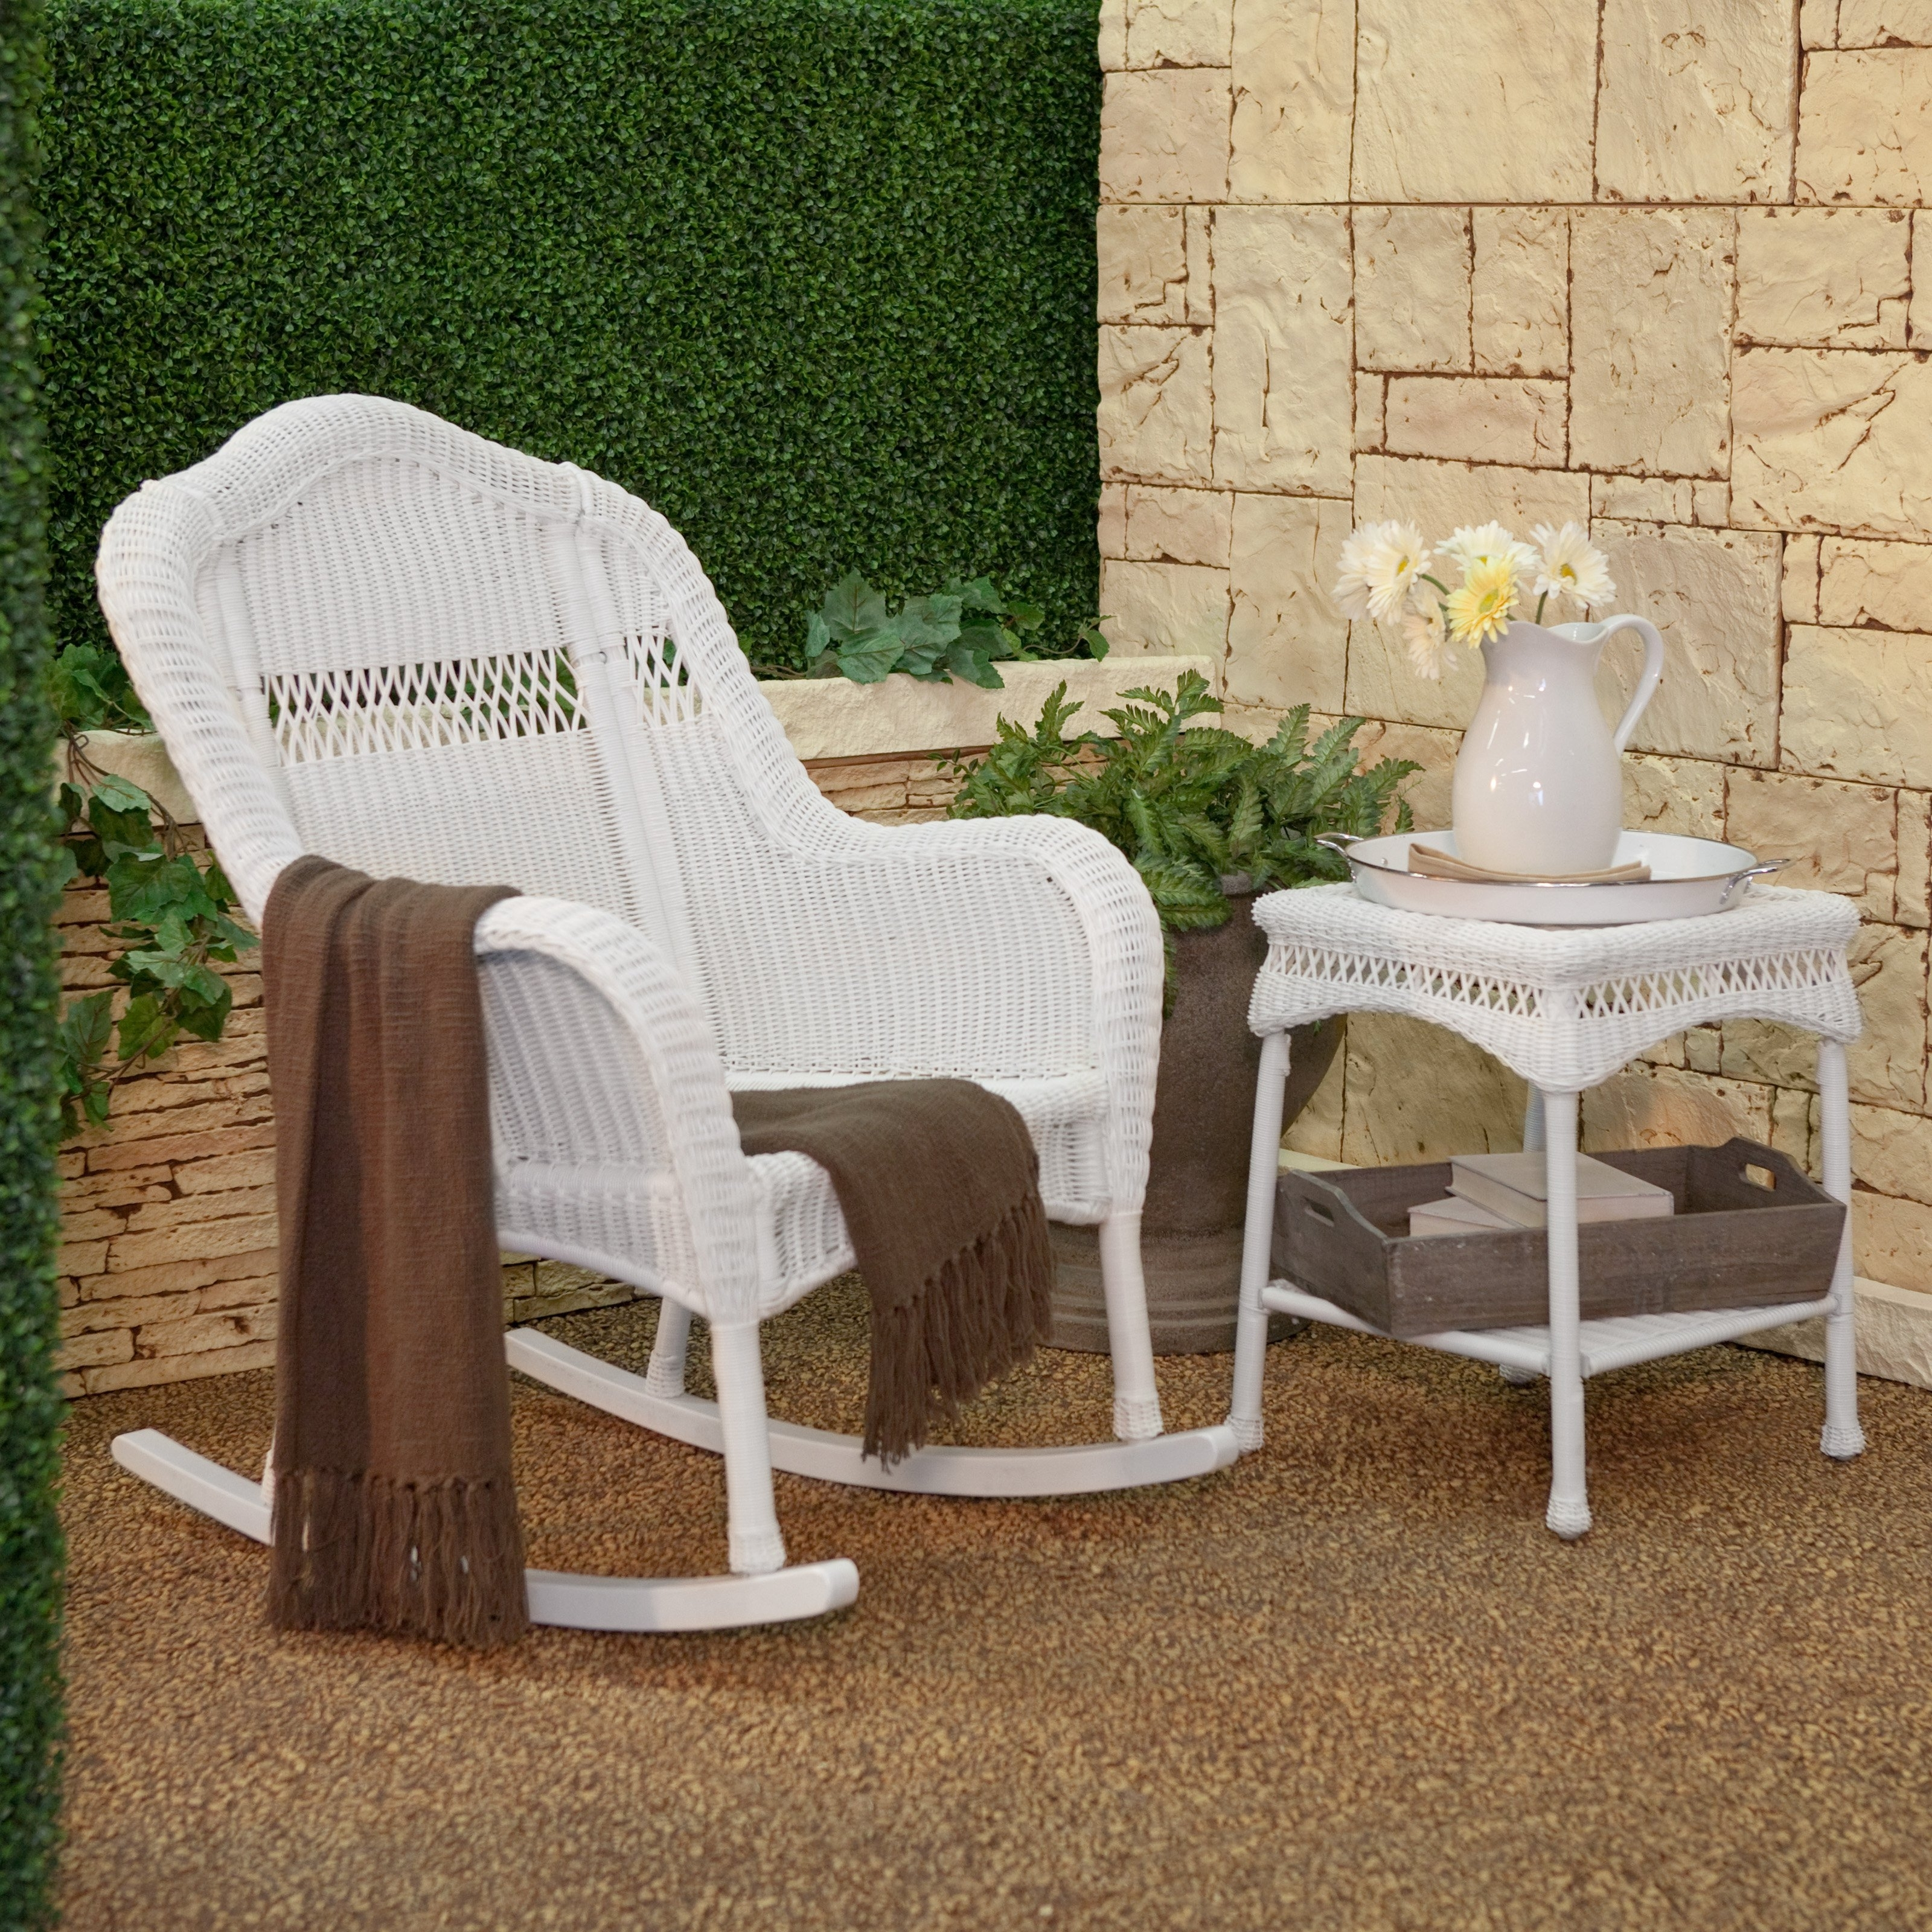 Rattan Glider Outdoor White Rocking Chairs Sale Plastic With Rattan Outdoor Rocking Chairs (View 15 of 15)